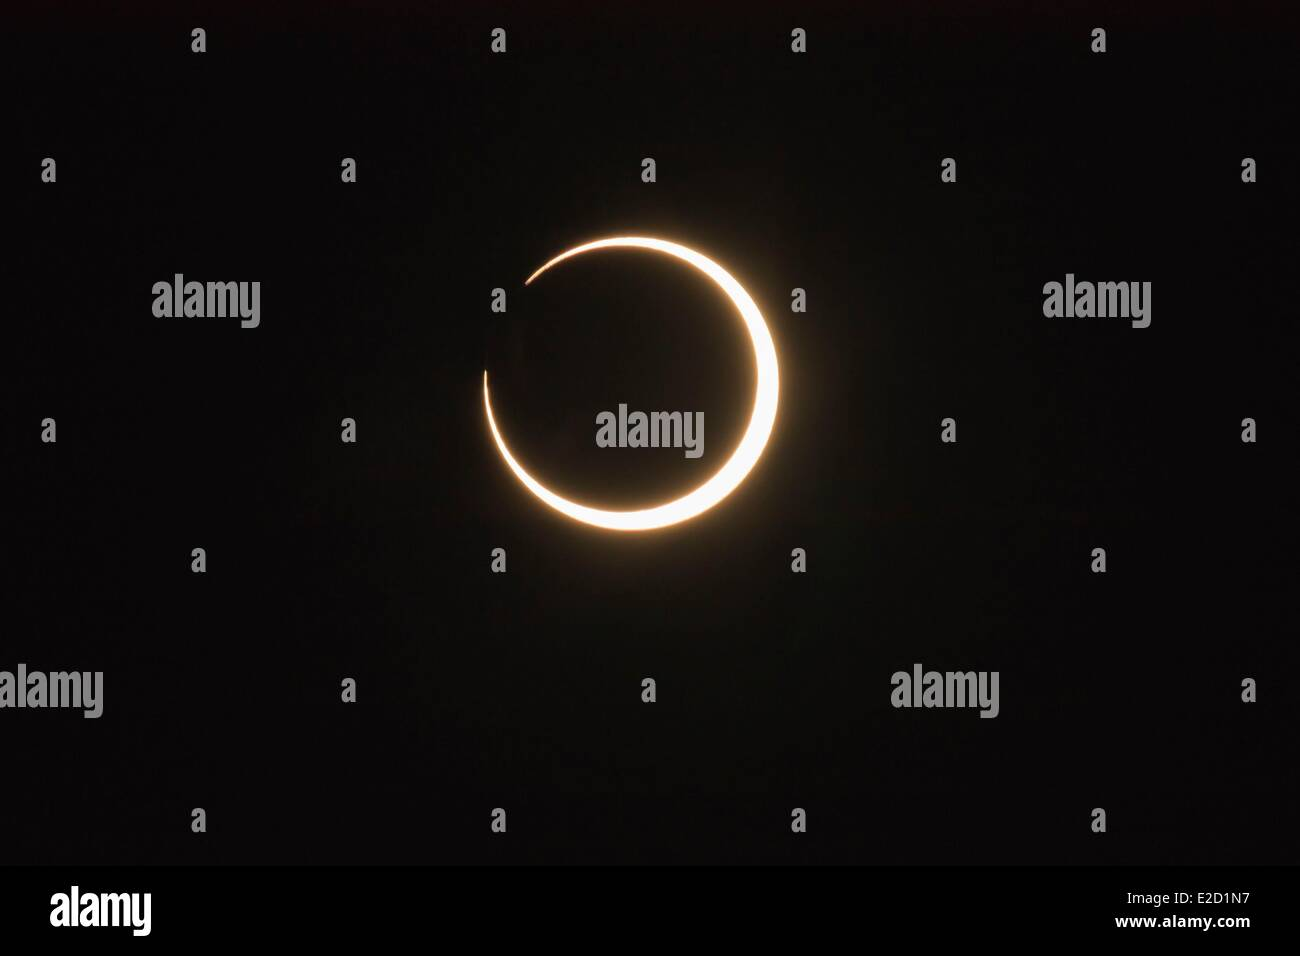 United States Arizona Navajo Nation Indian Reservation Monument Valley Tribal Park annular solar eclipse 2012 May - Stock Image